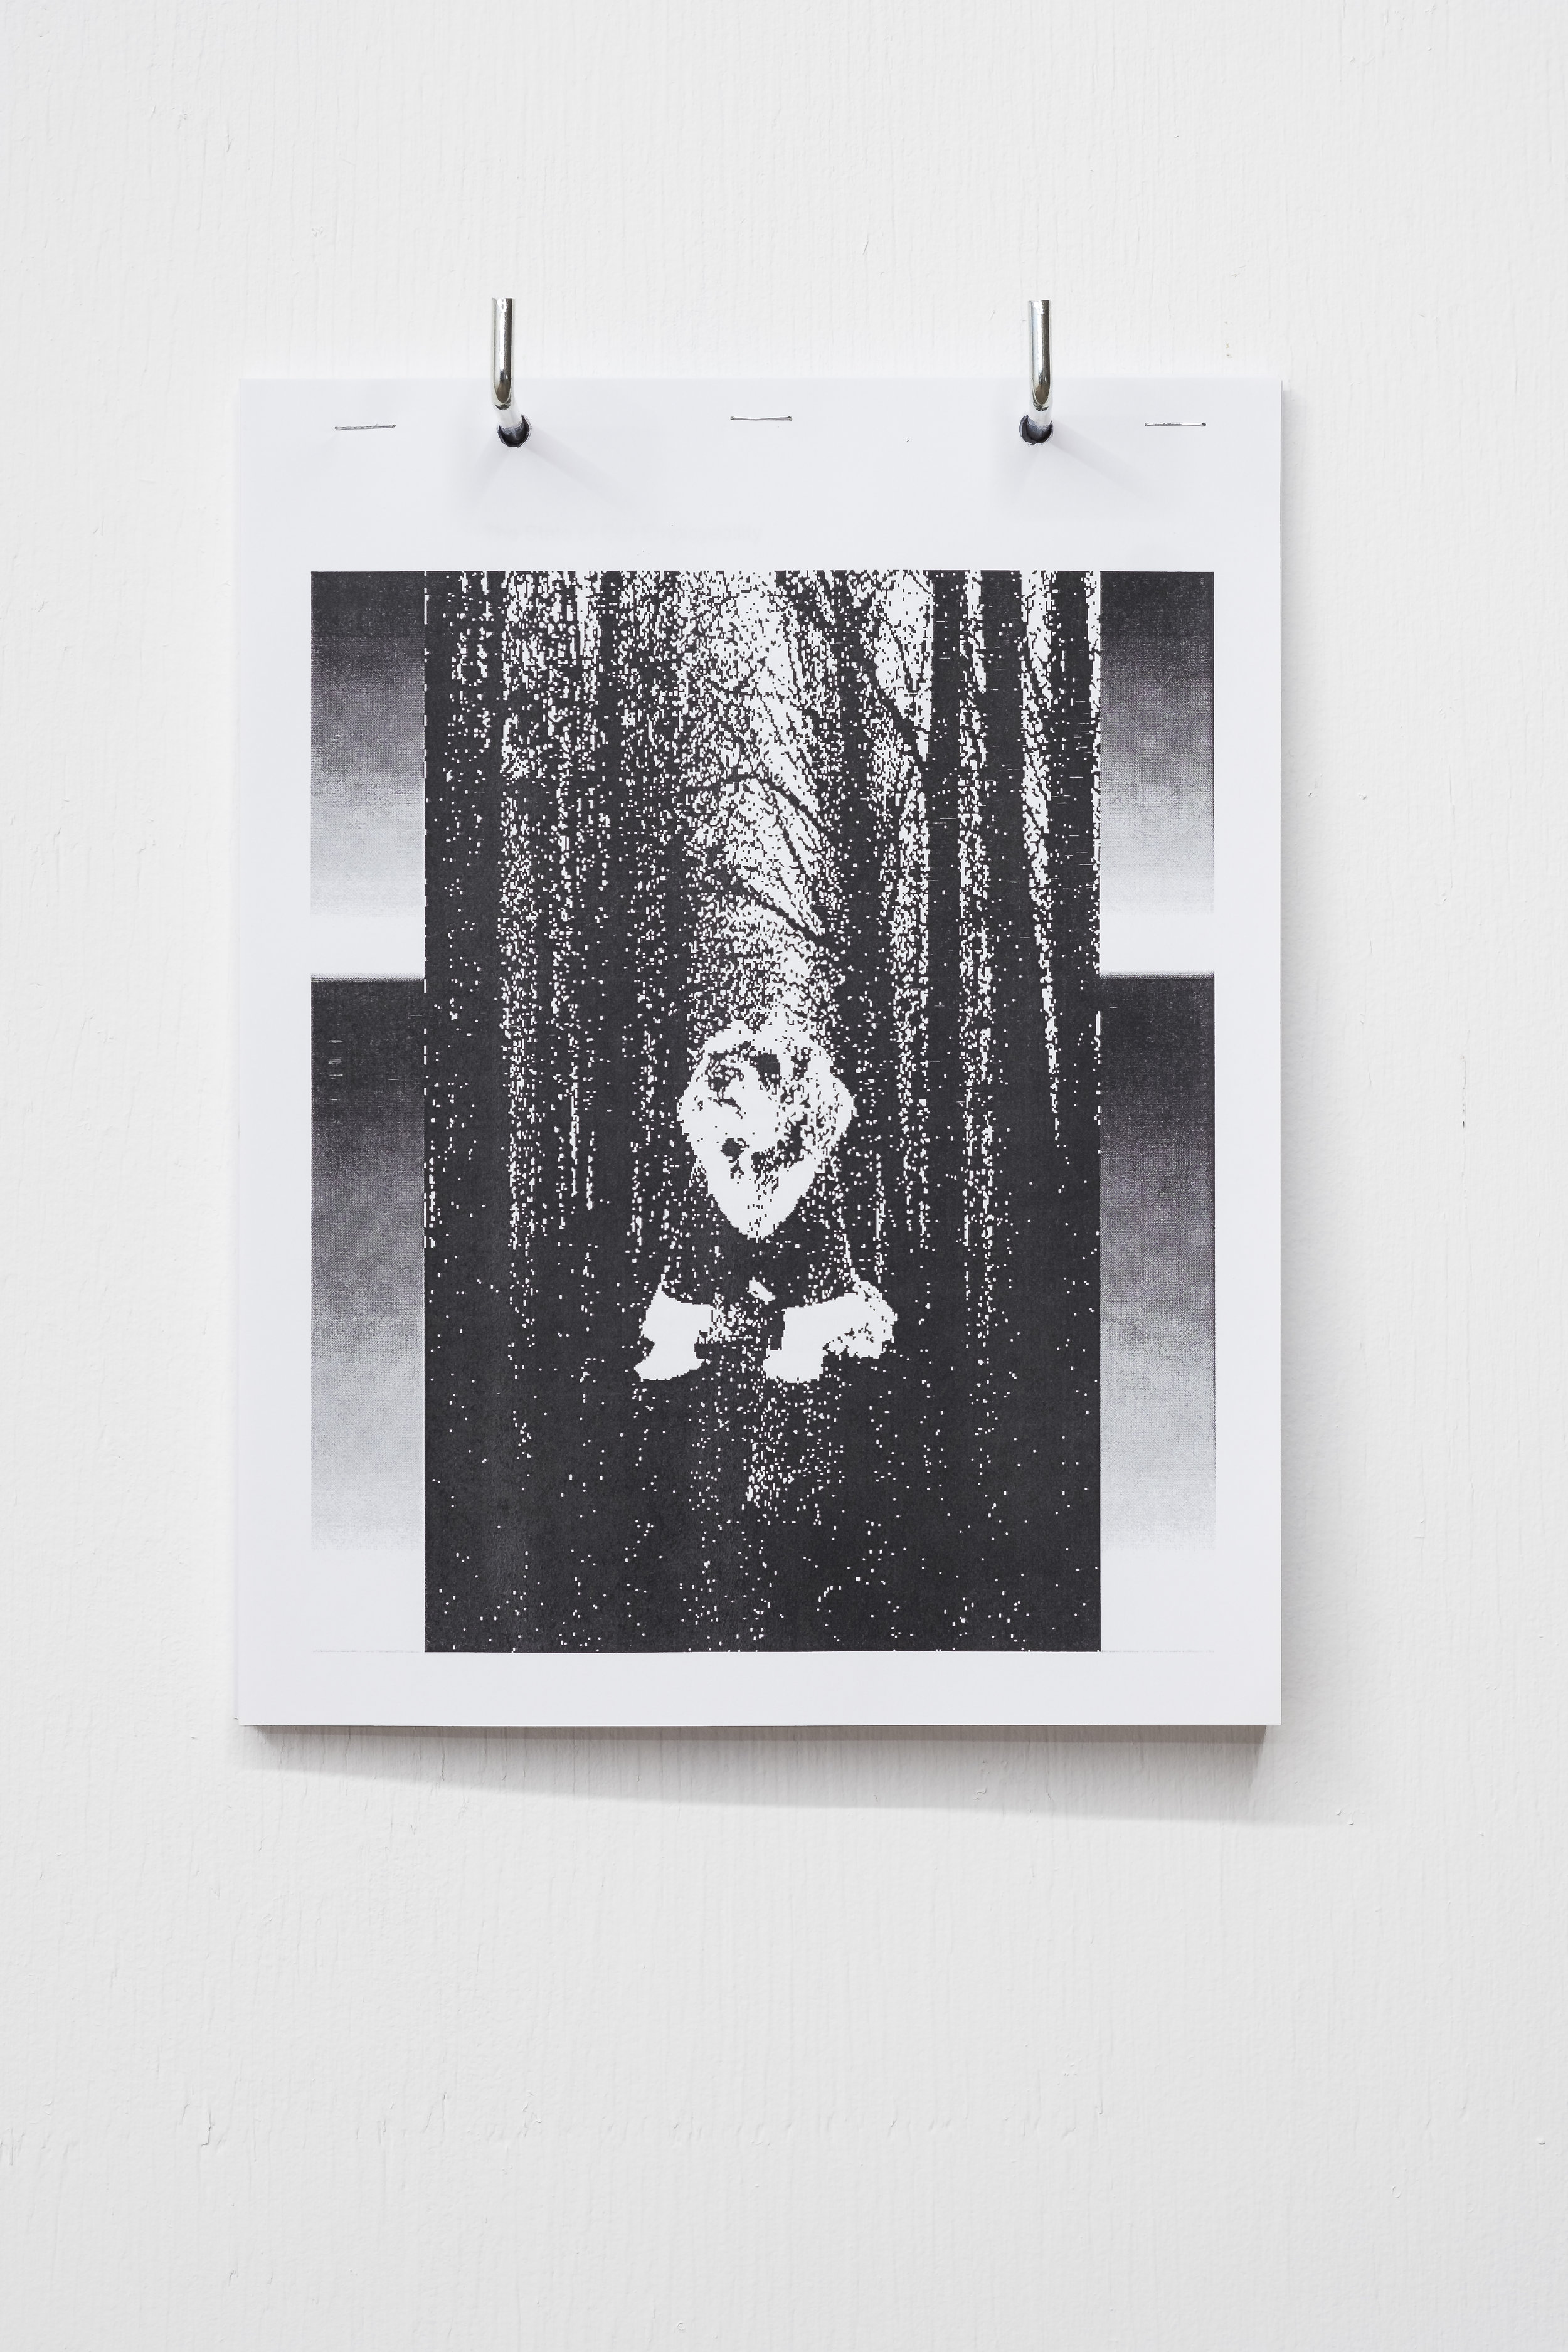 Untitled 01, 2018. 8.5 x 11 in. 6 pages Xerox print